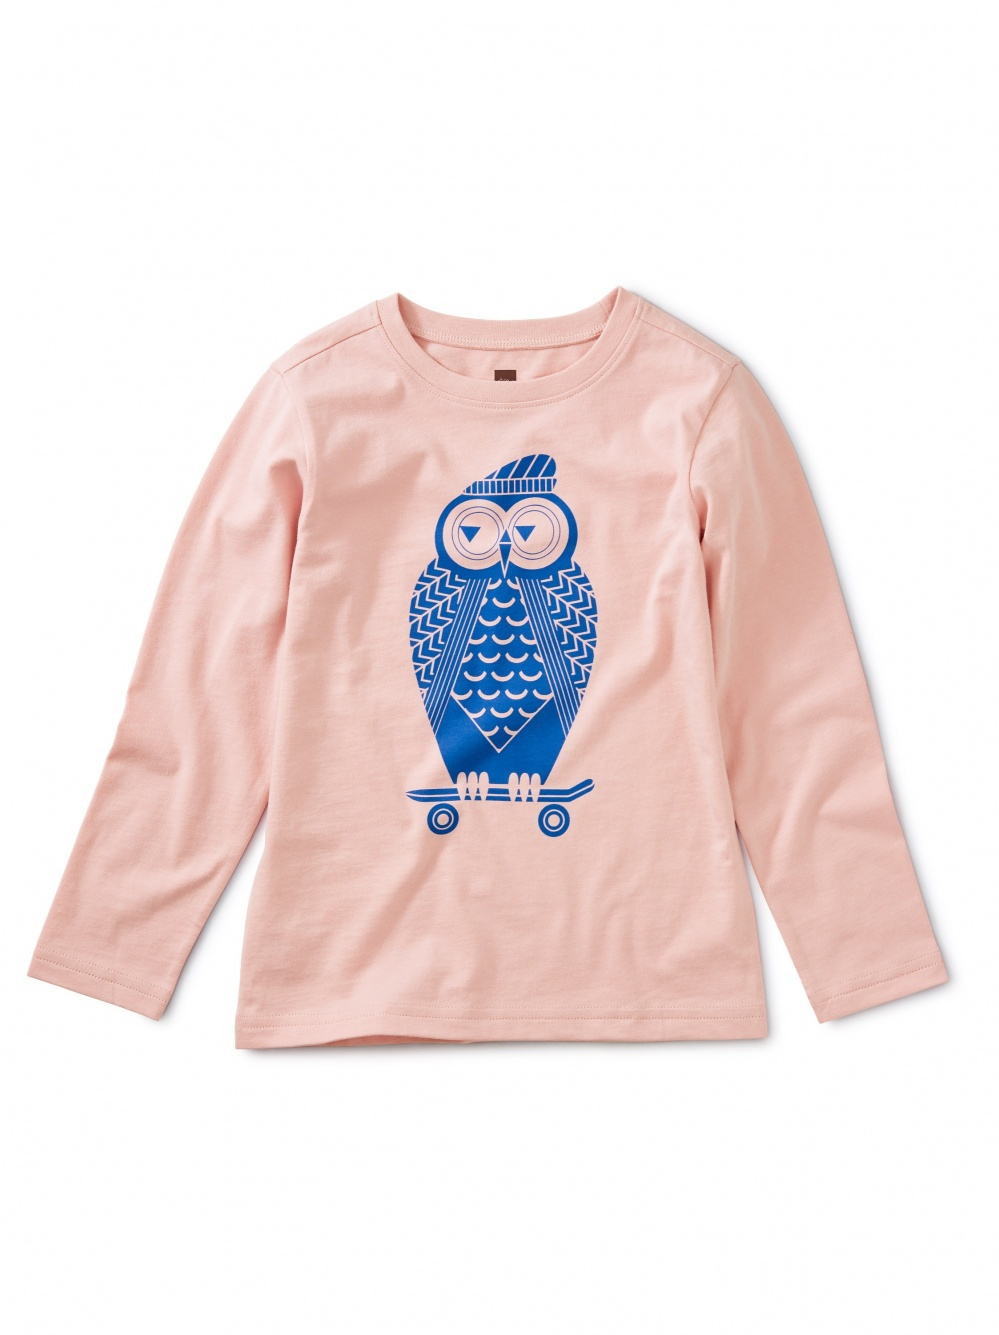 Skater Owl Graphic Tee